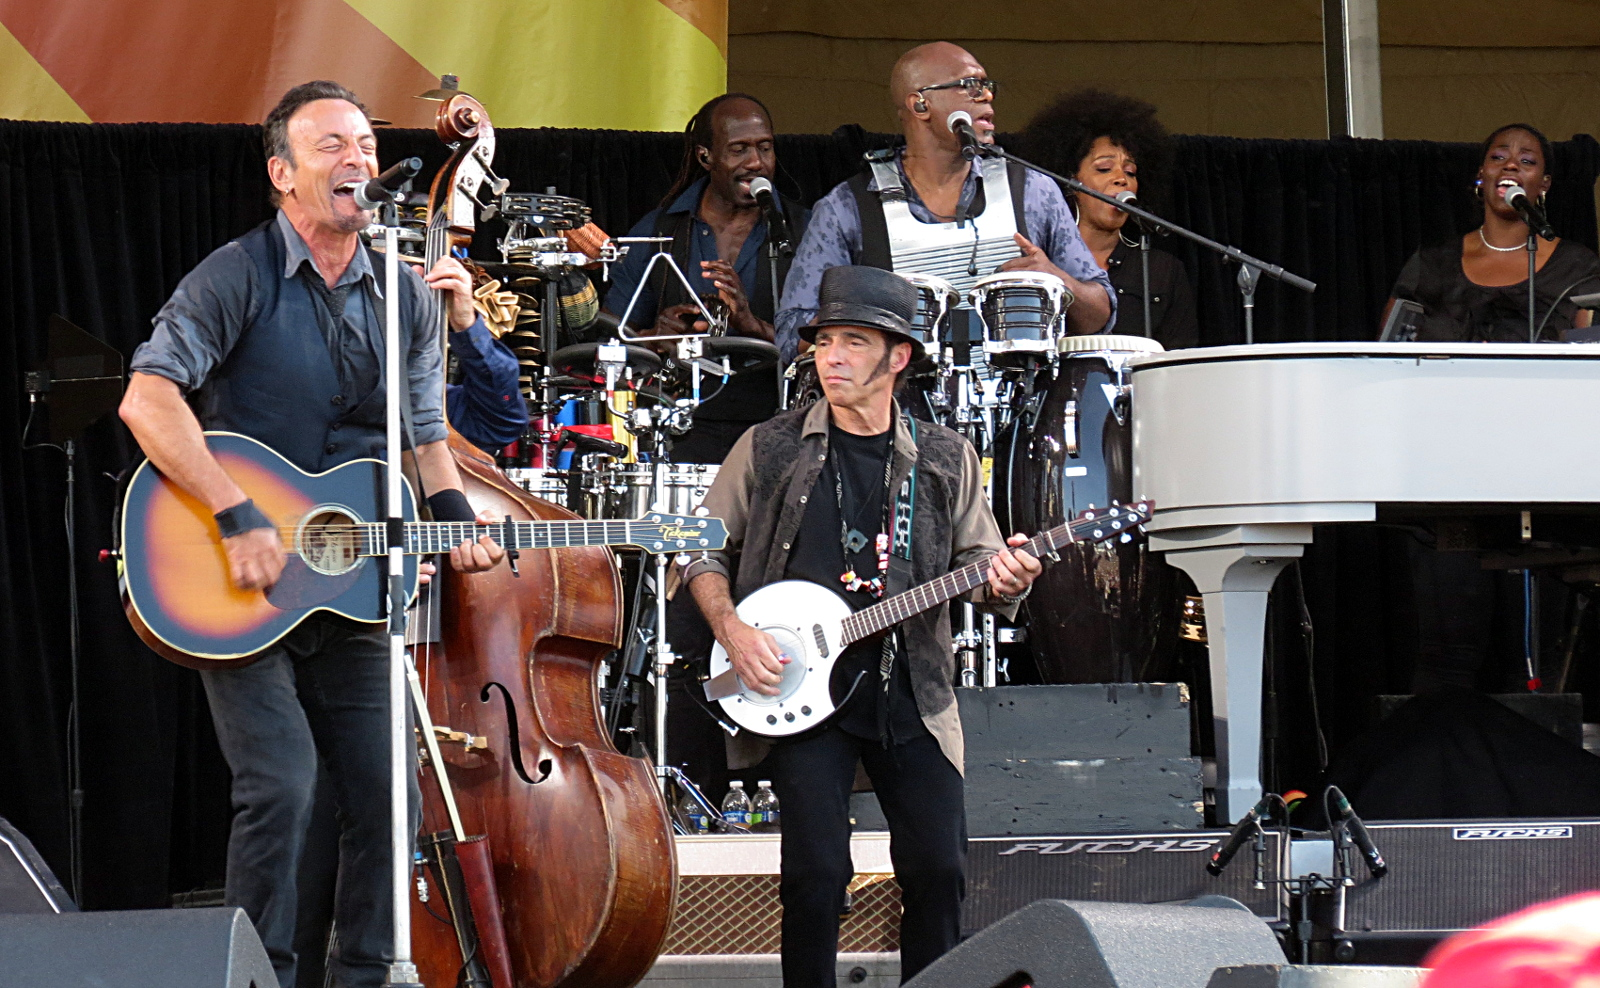 Bruce Springsteen down front with Nils Lofgren